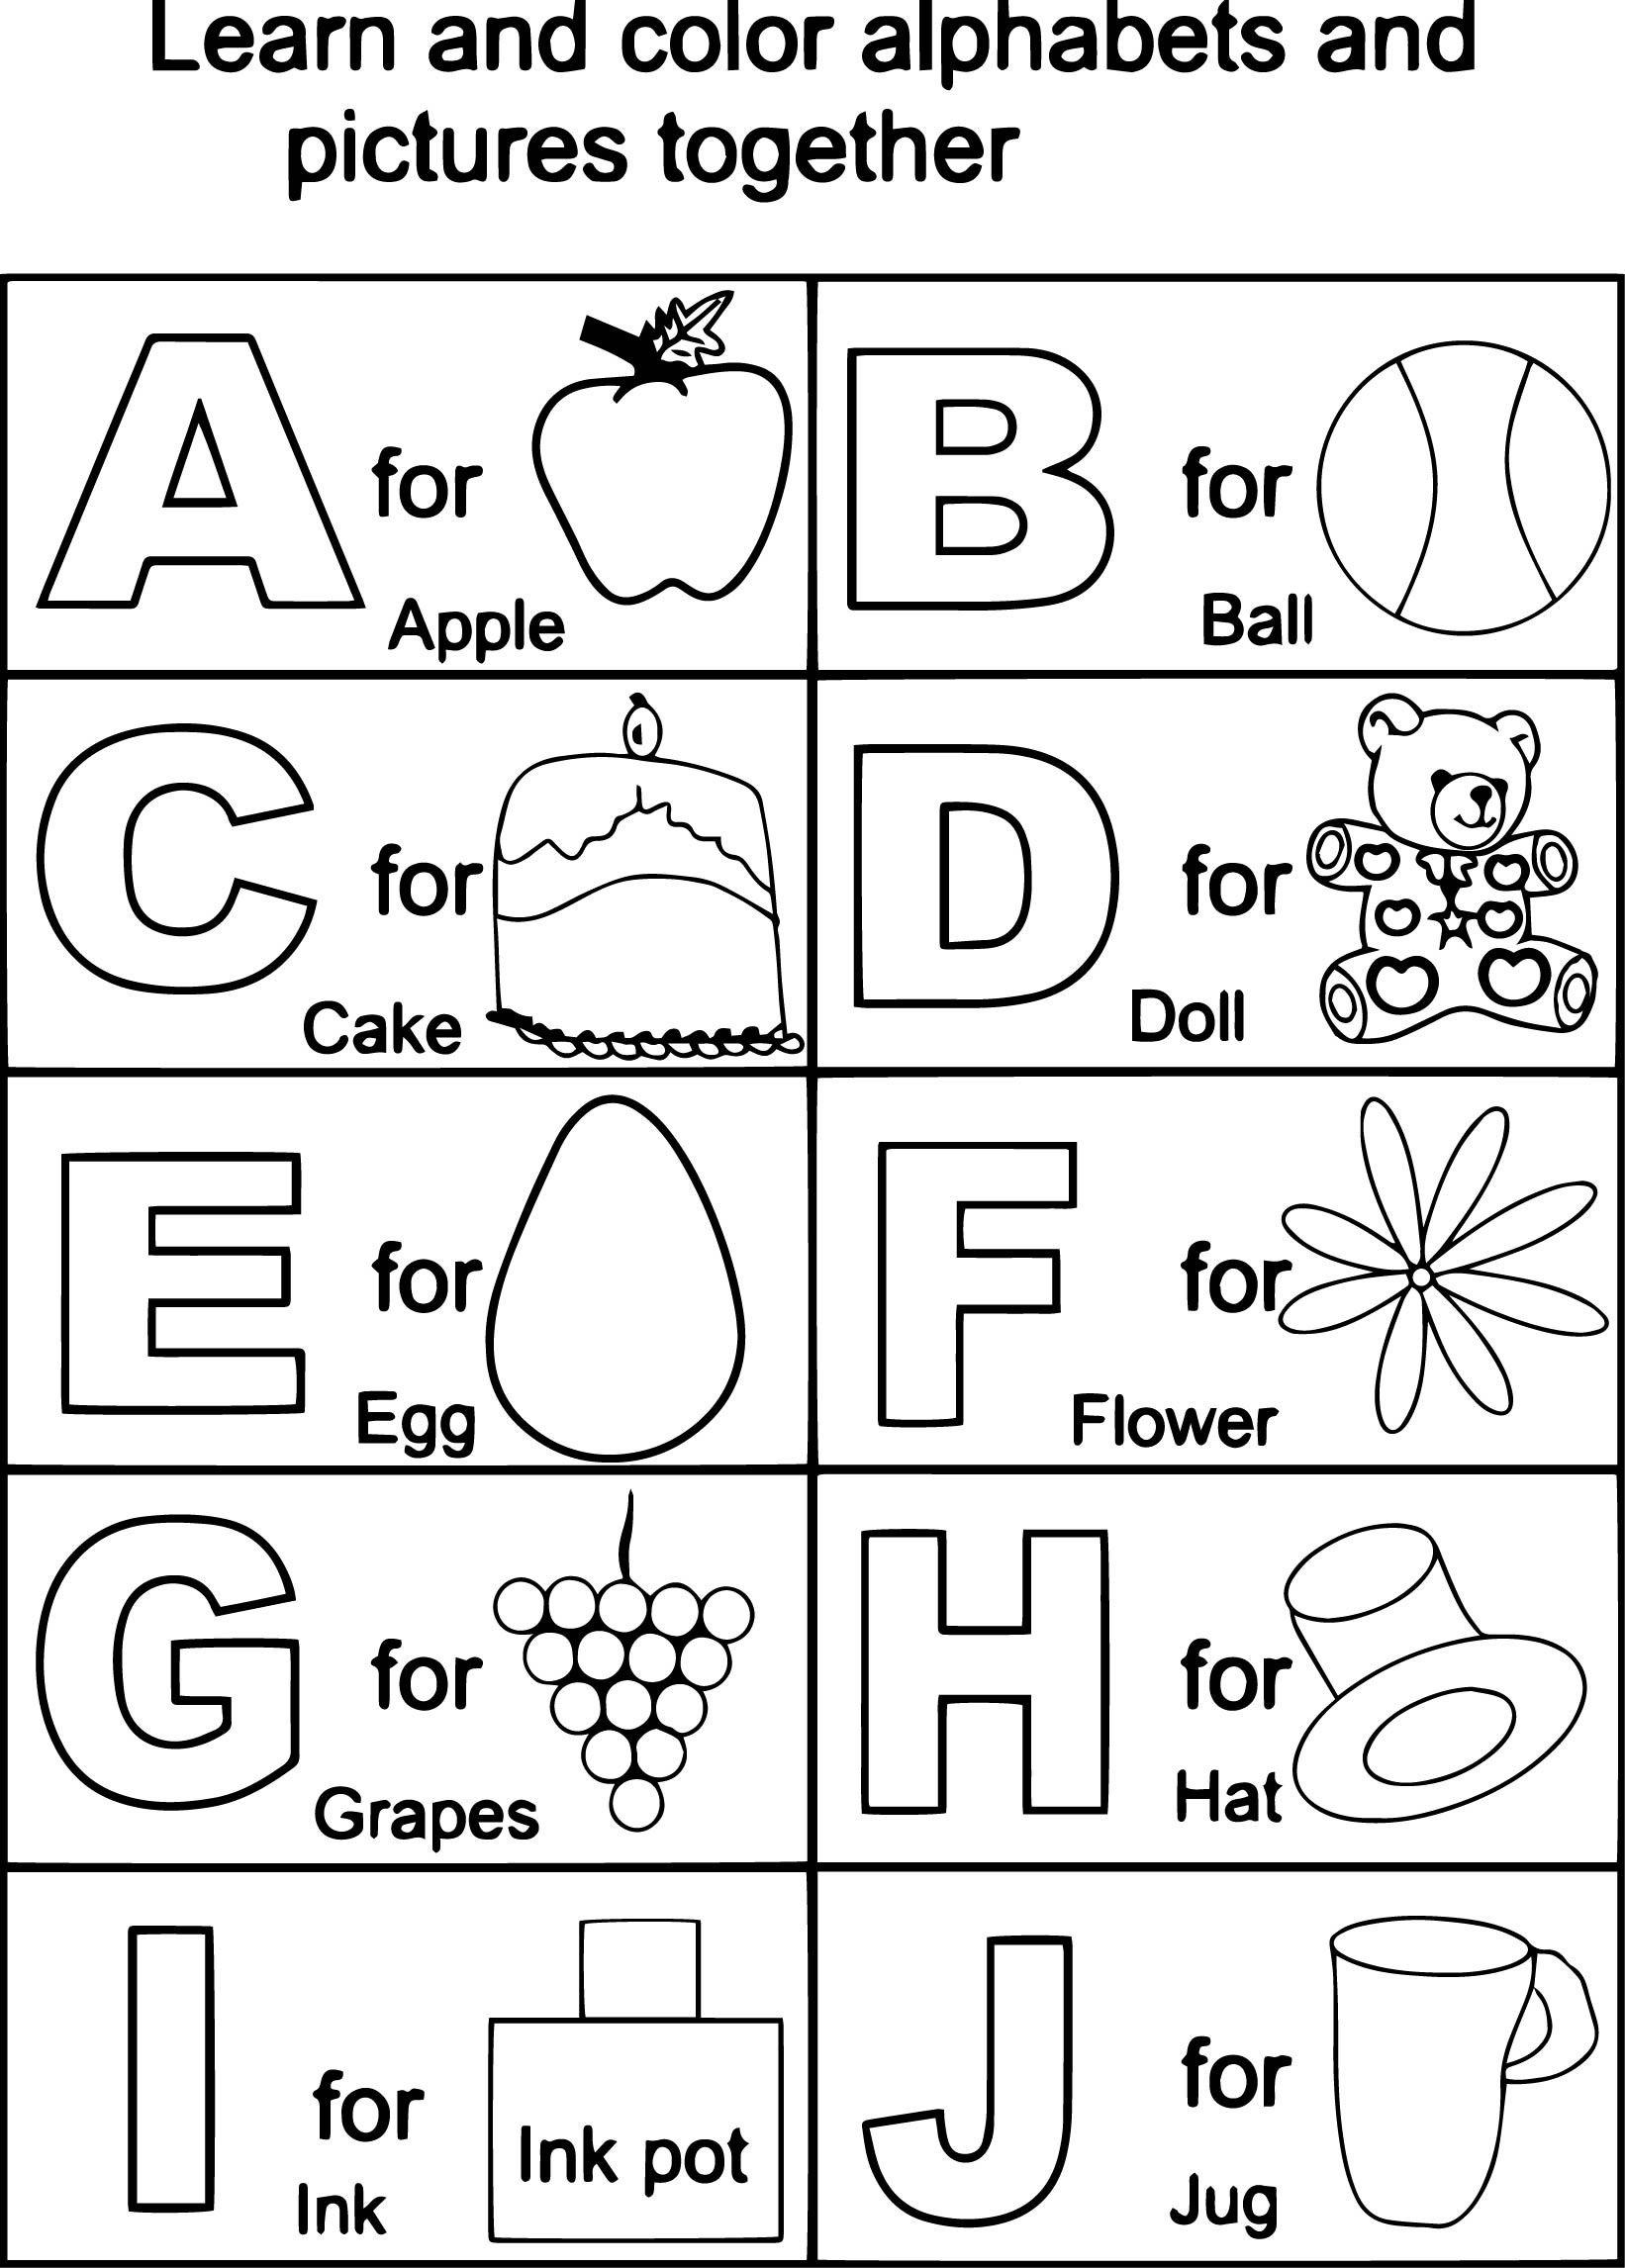 Printable Abc Coloring Pages For Toddlers